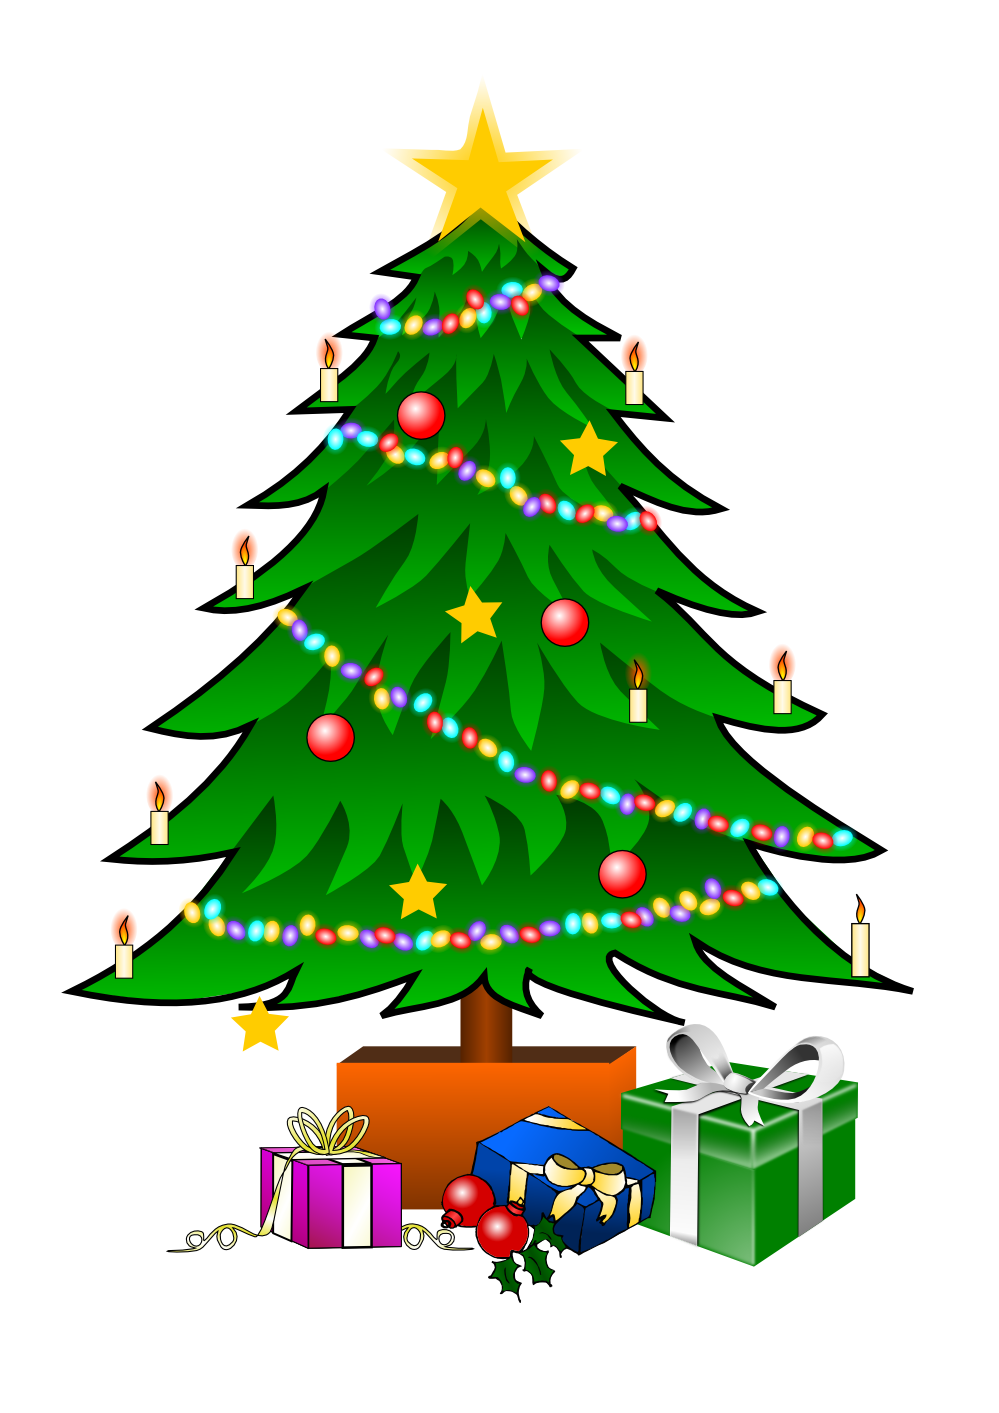 this nice christmas tree with presents clip art can be used for rh pinterest com Modern Christmas Tree Clip Art christmas tree designs clip art